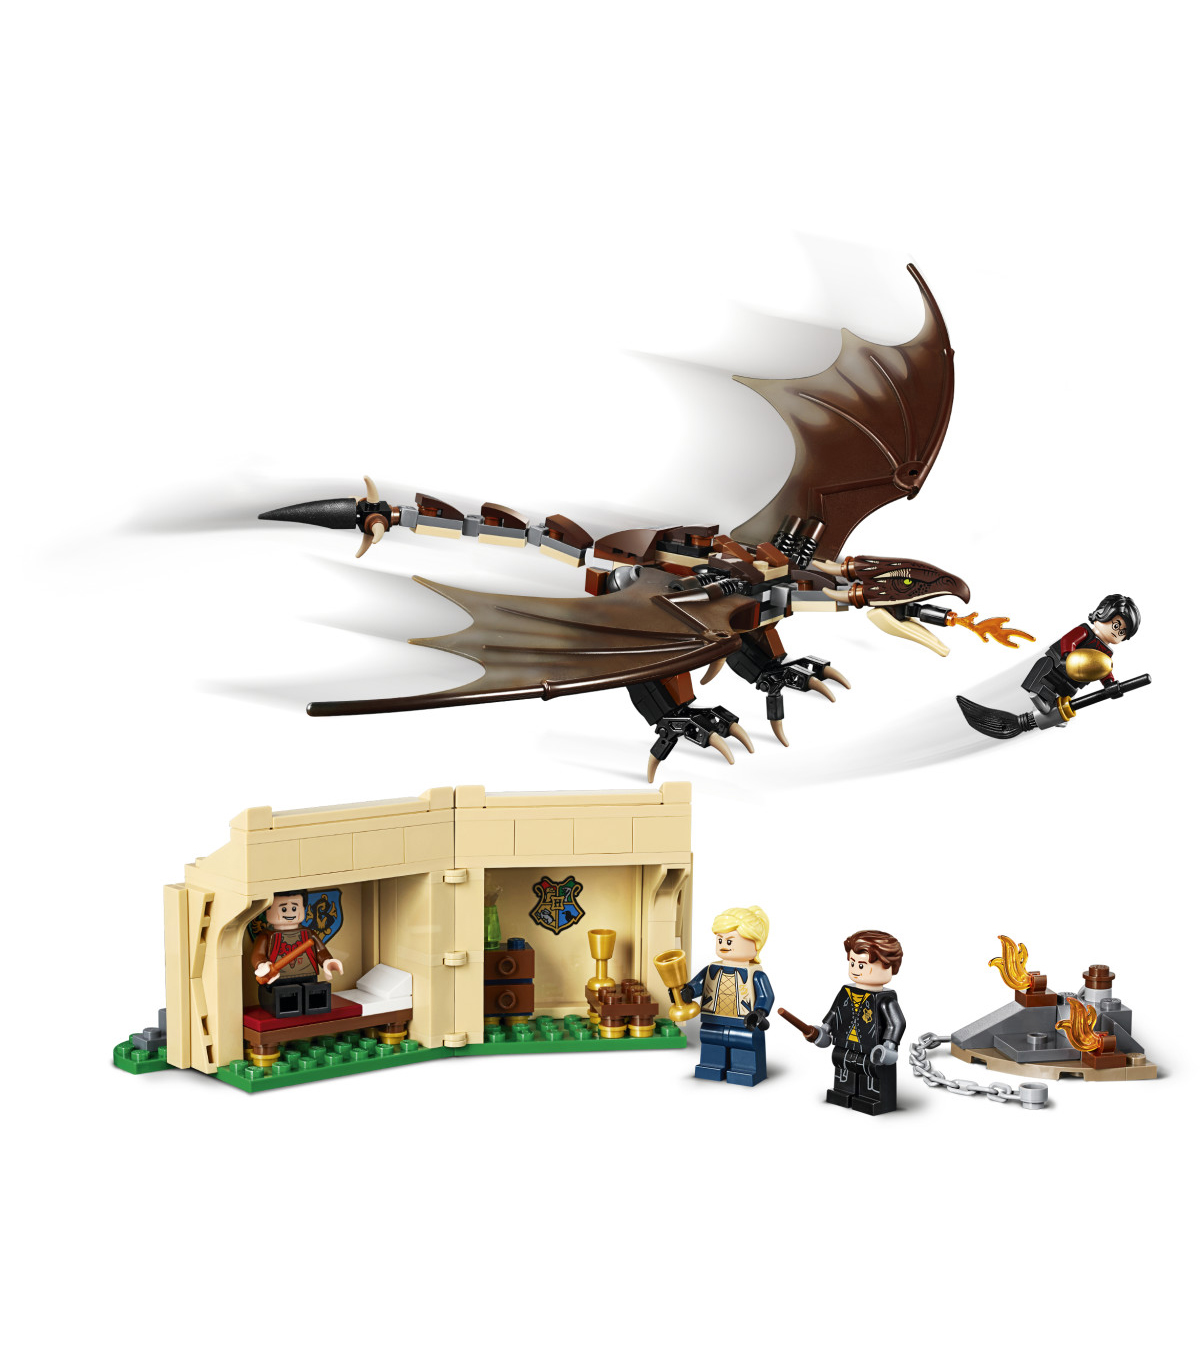 LEGO Harry Potter Hungarian Horntail Dragon Mini Build from 75946